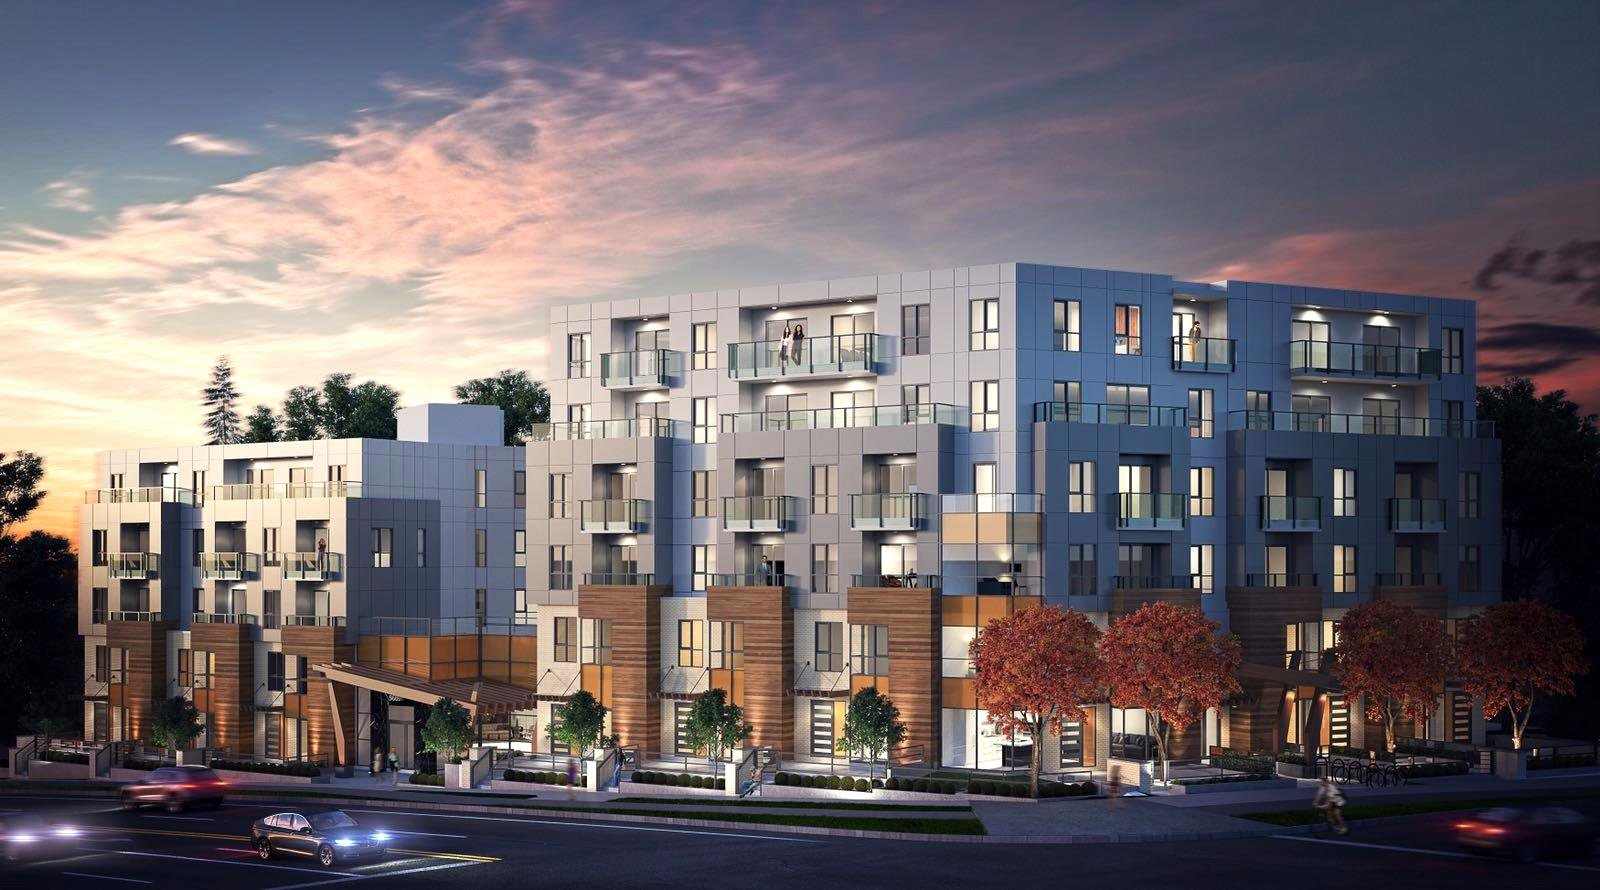 Main Photo: B106 at FRASER LANDMARK by DARSHAN BUILDERS in : Whalley Condo  (Surrey)